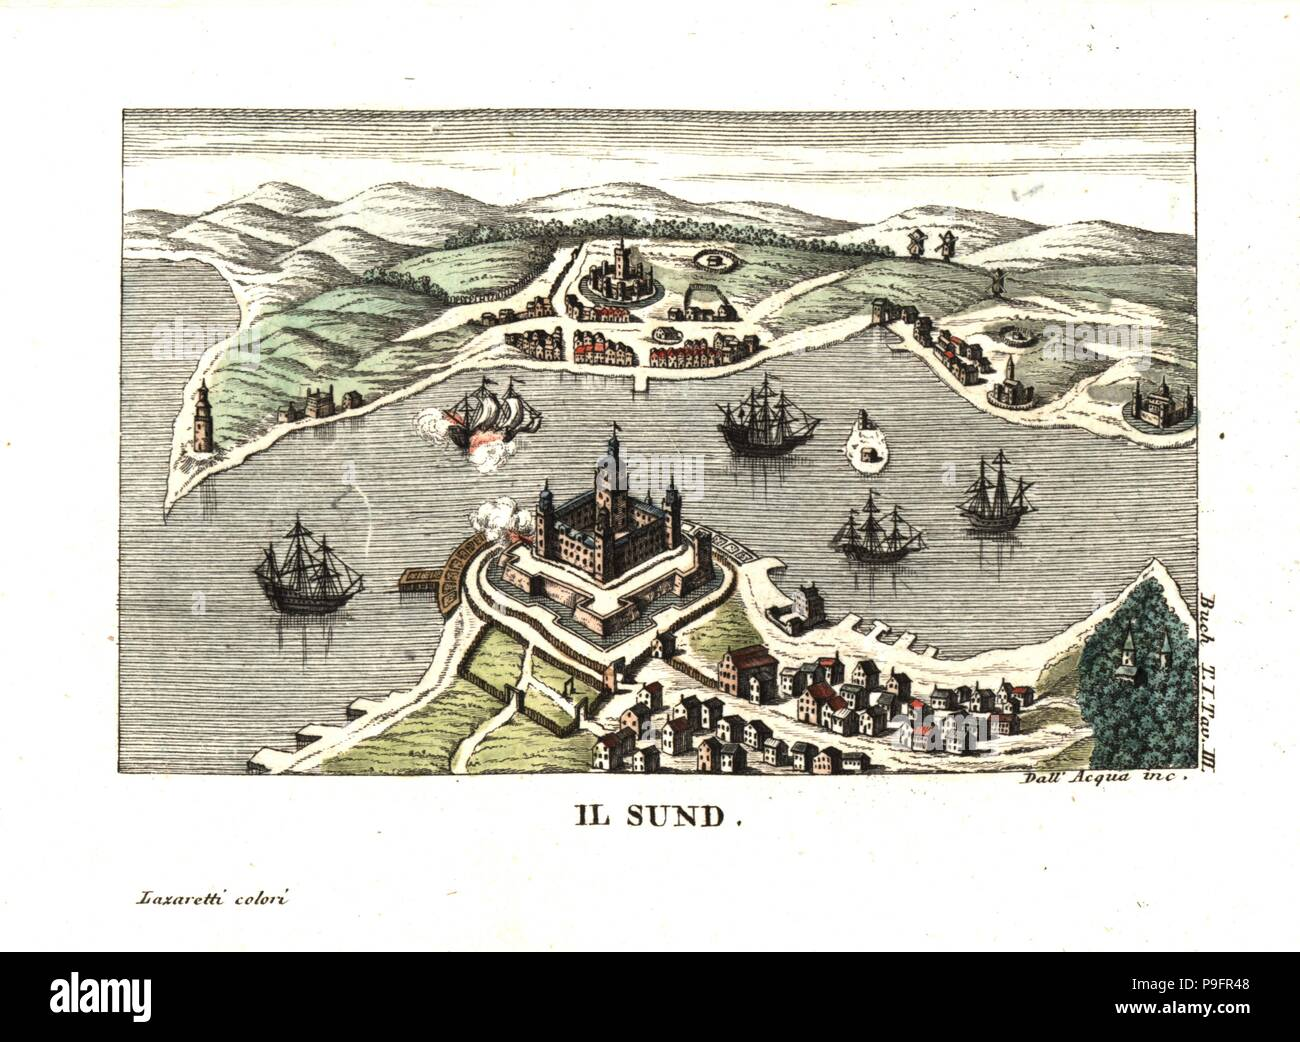 The Sund (channel) with Kronborg Castle, Helsingor (Elsinore), Denmark and Helsingborg, Sweden, on the other side. Illustration from Leopold von Buch's Travels Through Norway and Lapland, 1813. Copperplate engraving by Dell'Acqua handcoloured by Lazaretti from Giovanni Battista Sonzogno's Collection of the Most Interesting Voyages (Raccolta de Viaggi Piu Interessanti), Milan, 1815-1817. - Stock Image